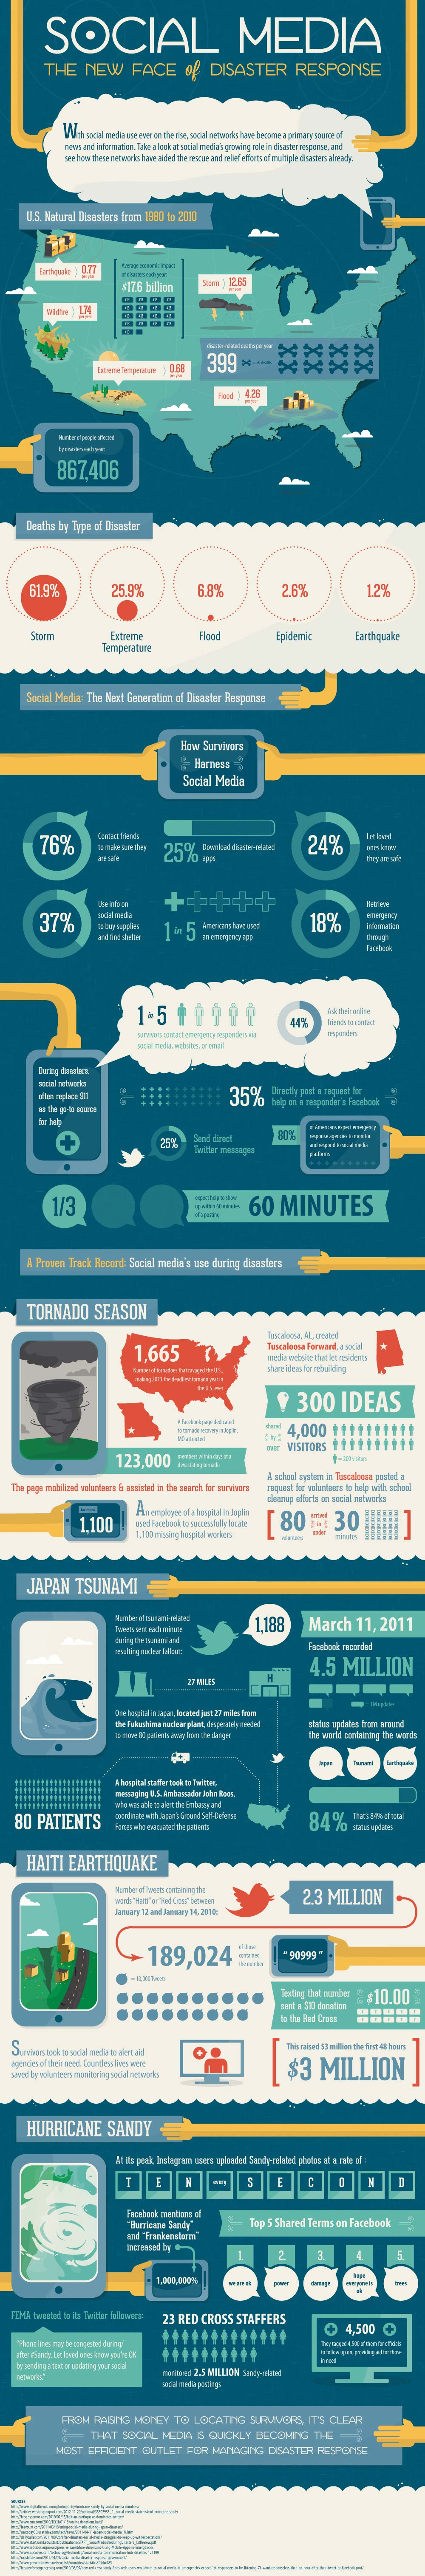 Social Media and Natural Disasters-Infographic